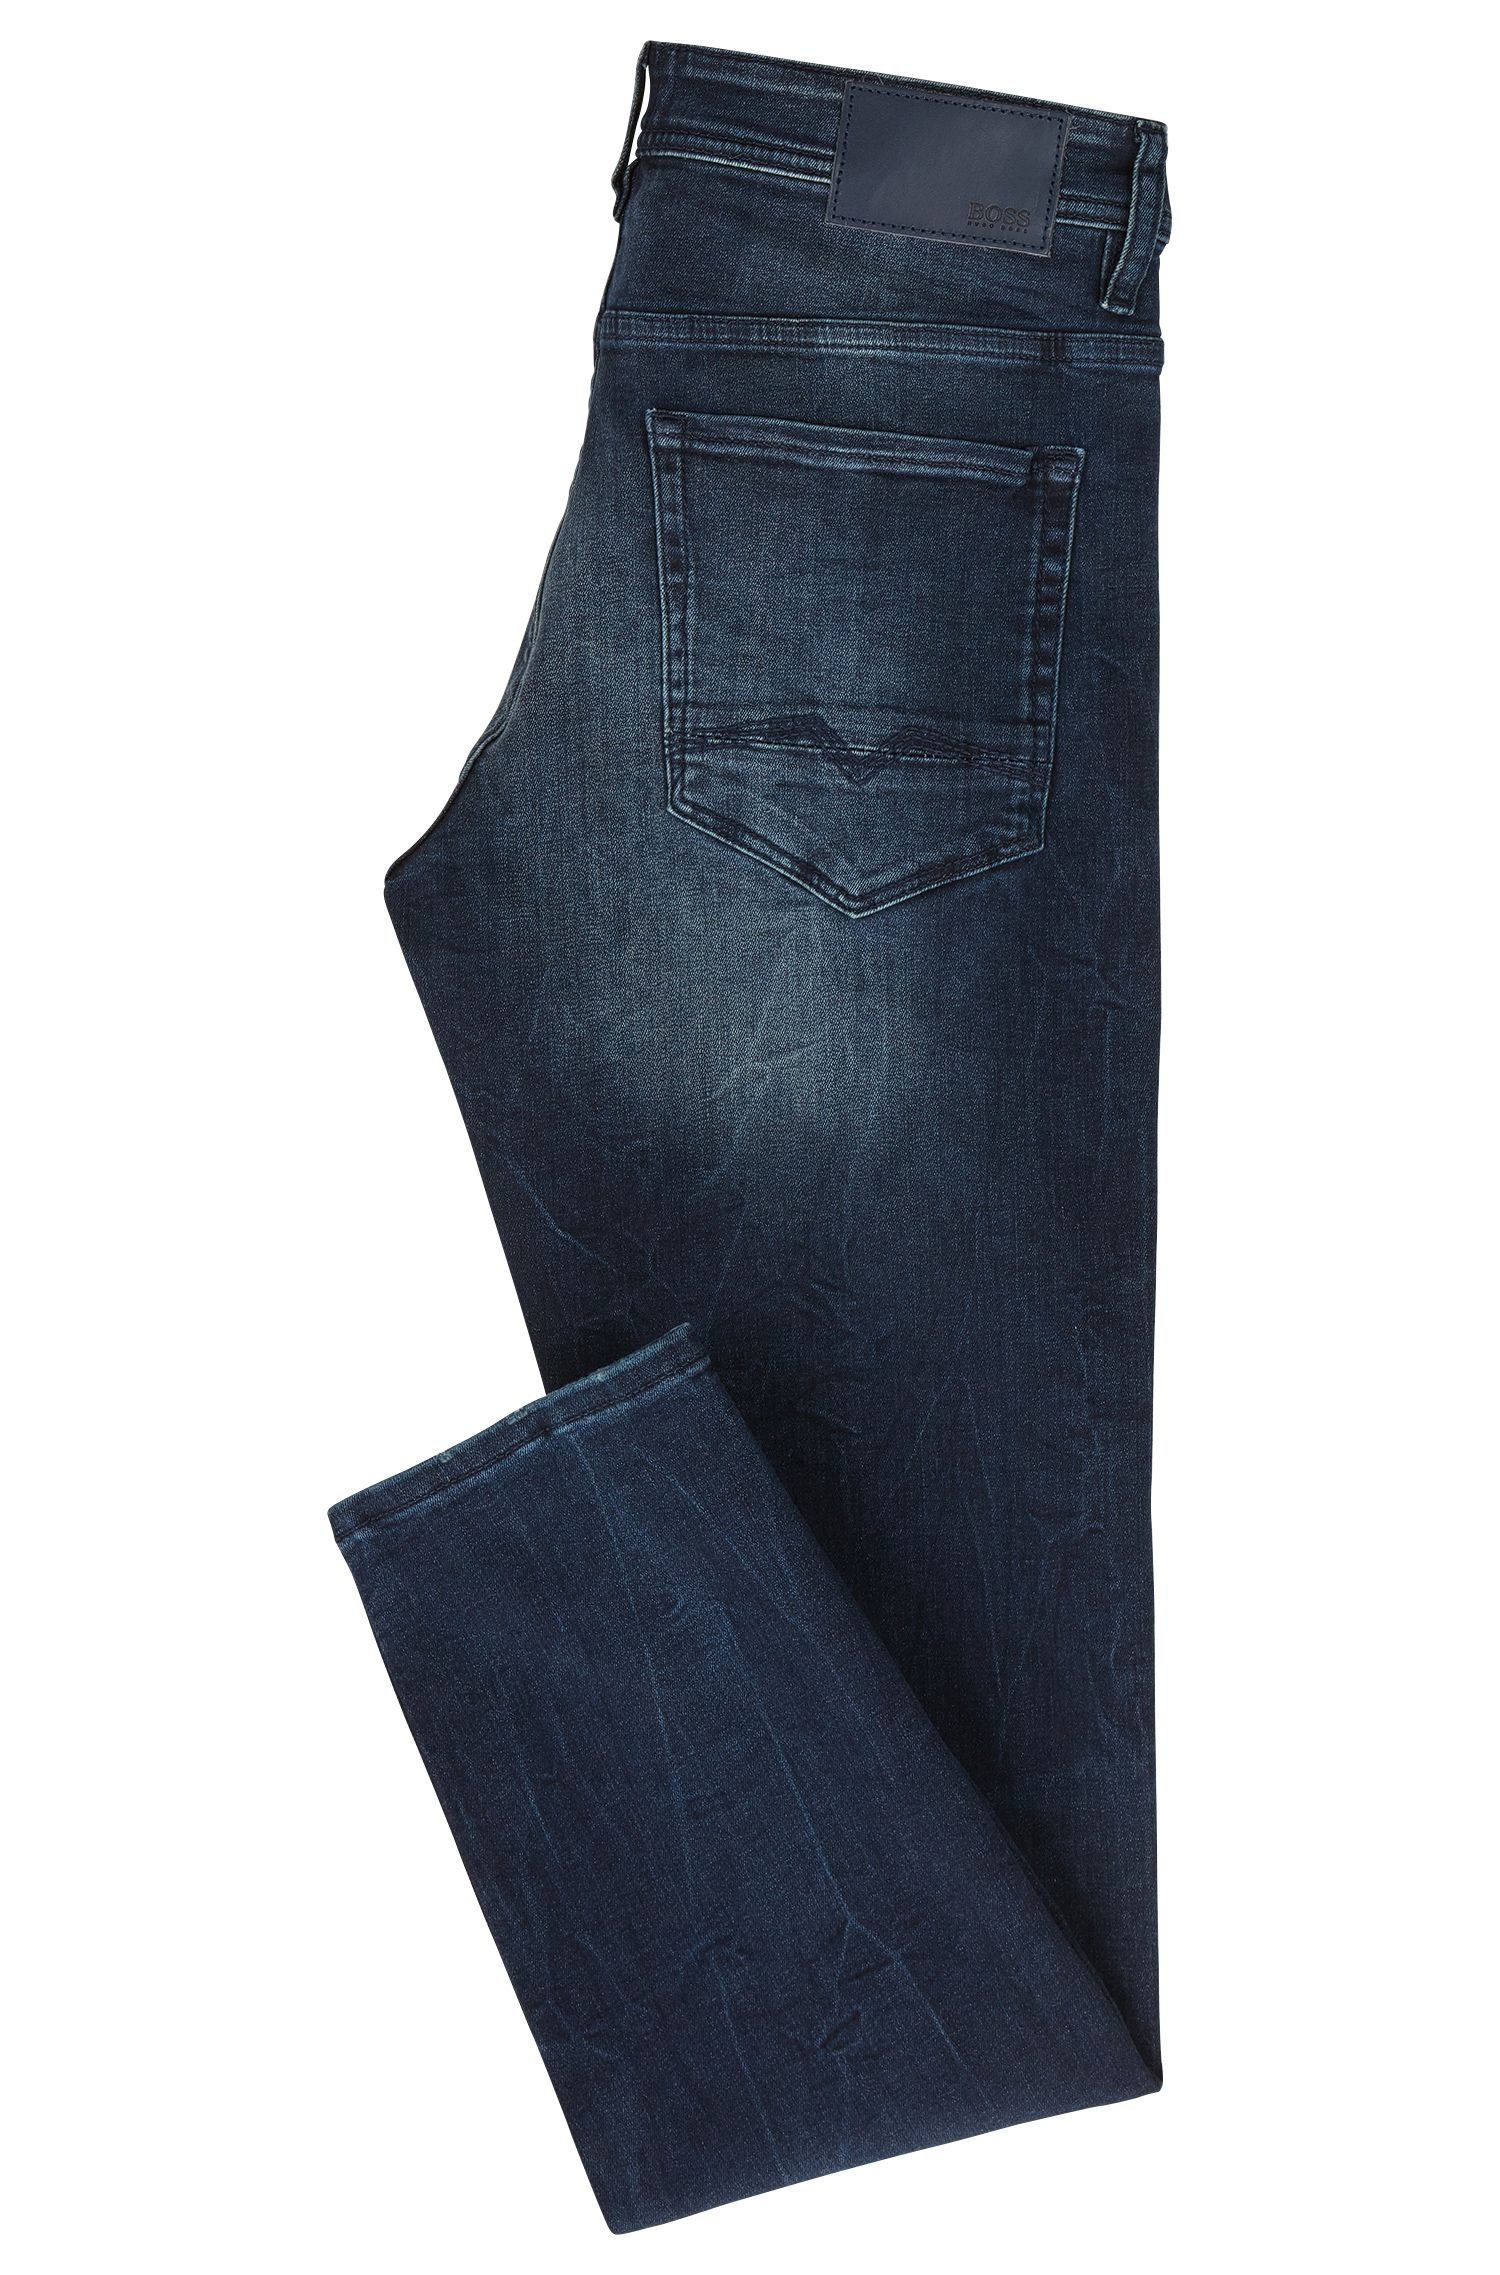 Jean fuselé Tapered Fit en denim super stretch indigo profond, à la finition usée